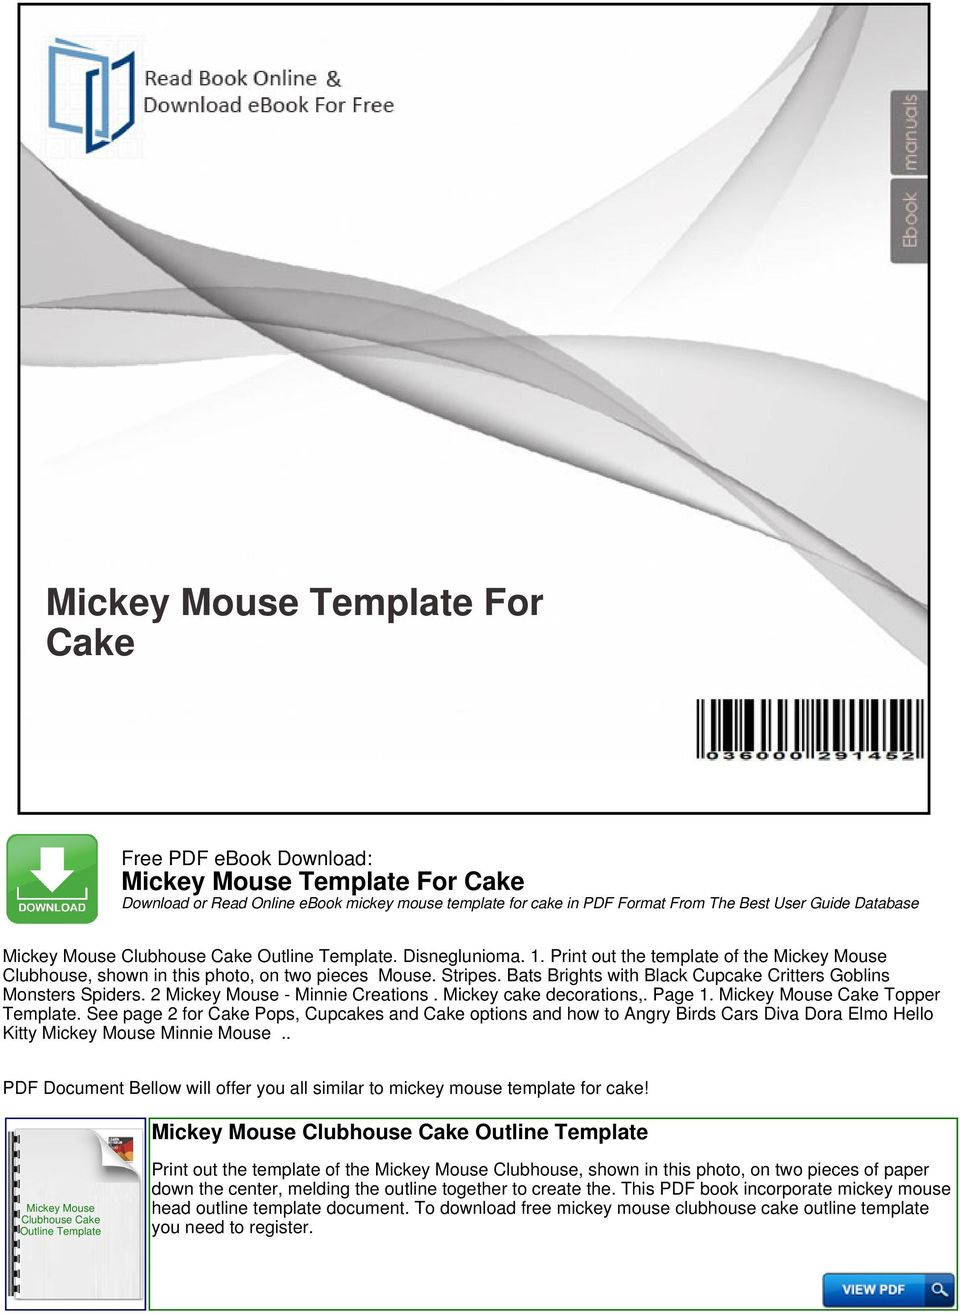 Mickey Mouse Template For Cake Pdf